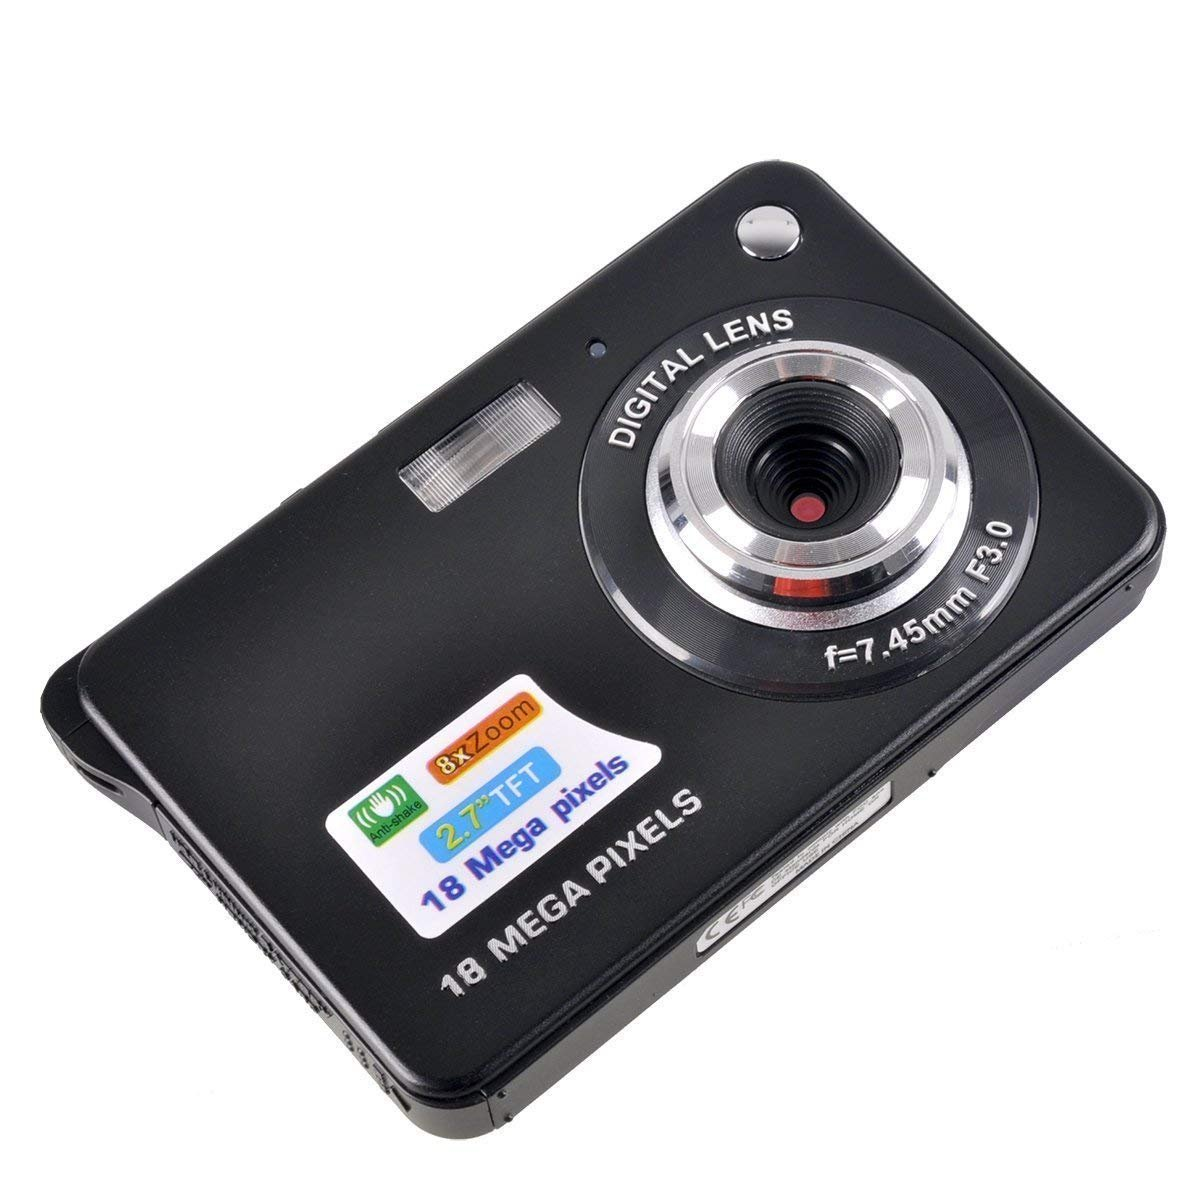 Stoga Black Mini Camera, 2.7 inch, built-in flash